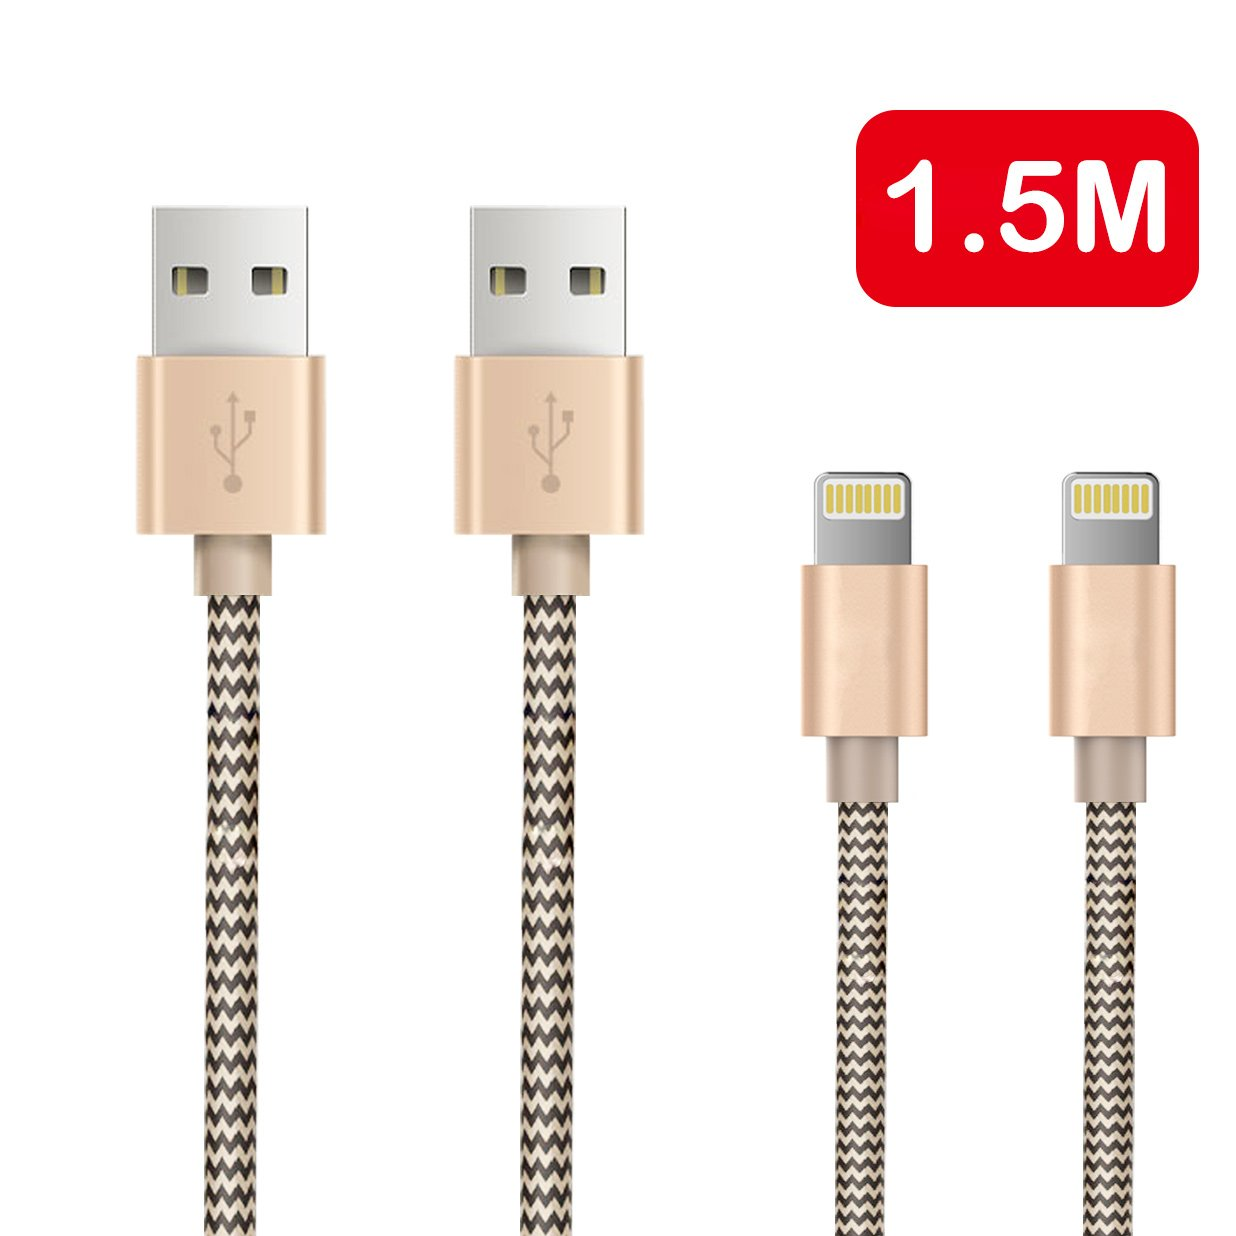 OTISA 2Pack 5Ft Nylon Braided Lightning Cable with Ultra-compact Connector(Fits for most phone cases), iphone charging cable for iPhone 5se/6s/6/6s plus/5s/5/7/7 plus, iPad,iPod Compatible with iOS9